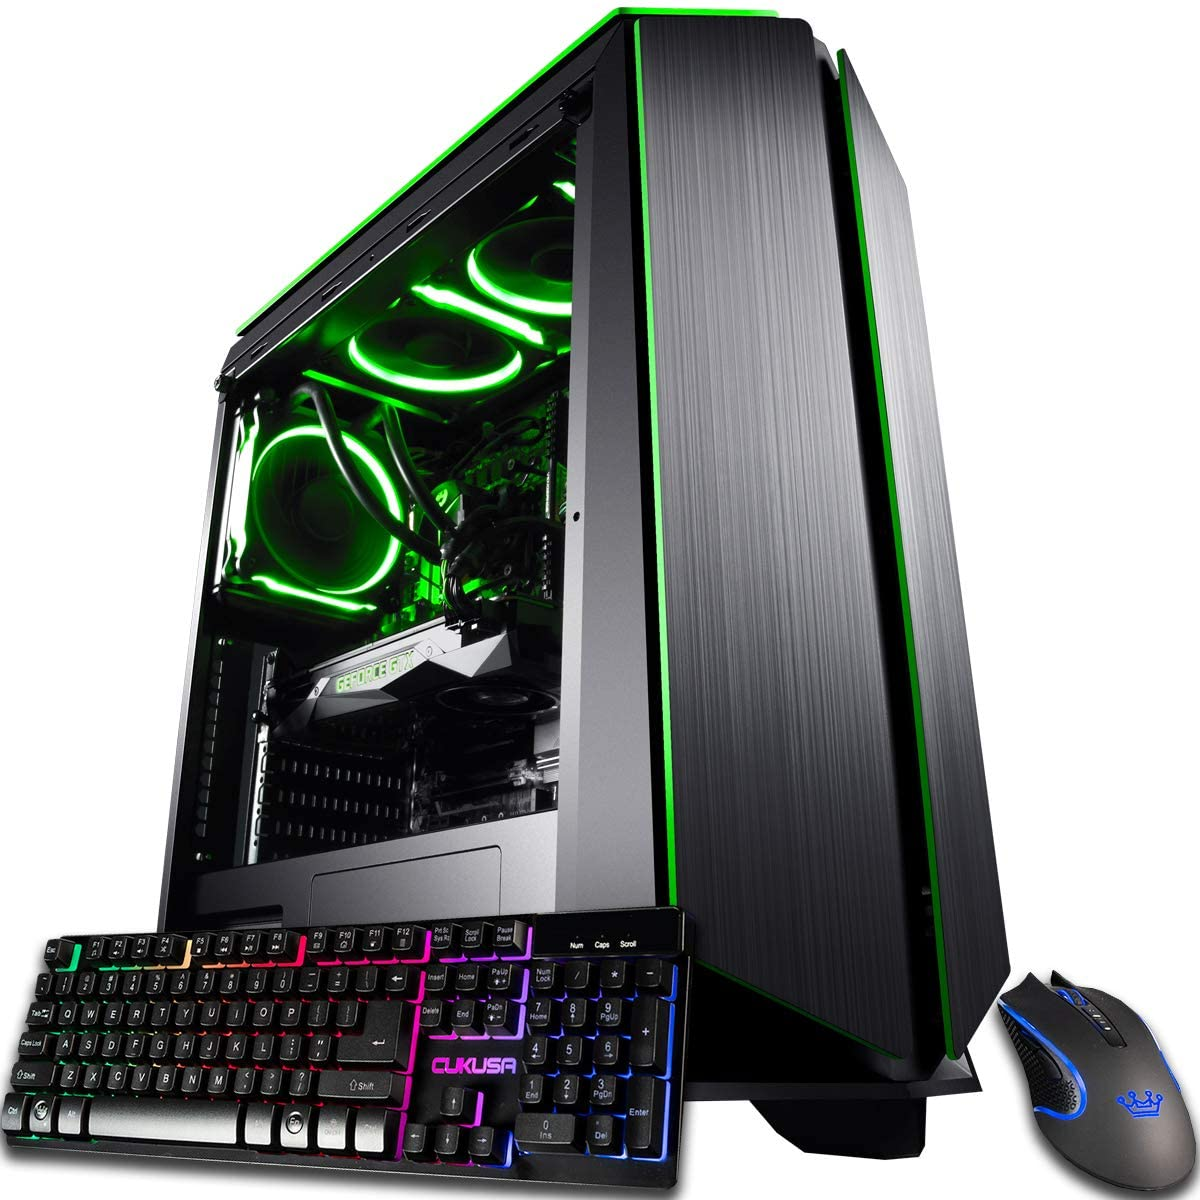 CUK Mantis Gaming PC (Liquid Cooled AMD Ryzen 9 3950X, NVIDIA GeForce RTX 2080 Ti 11GB, 64GB RAM, 1TB NVMe SSD + 2TB, 750W Gold PSU, Windows 10 Home) Best Tower Desktop Computer for Gamers